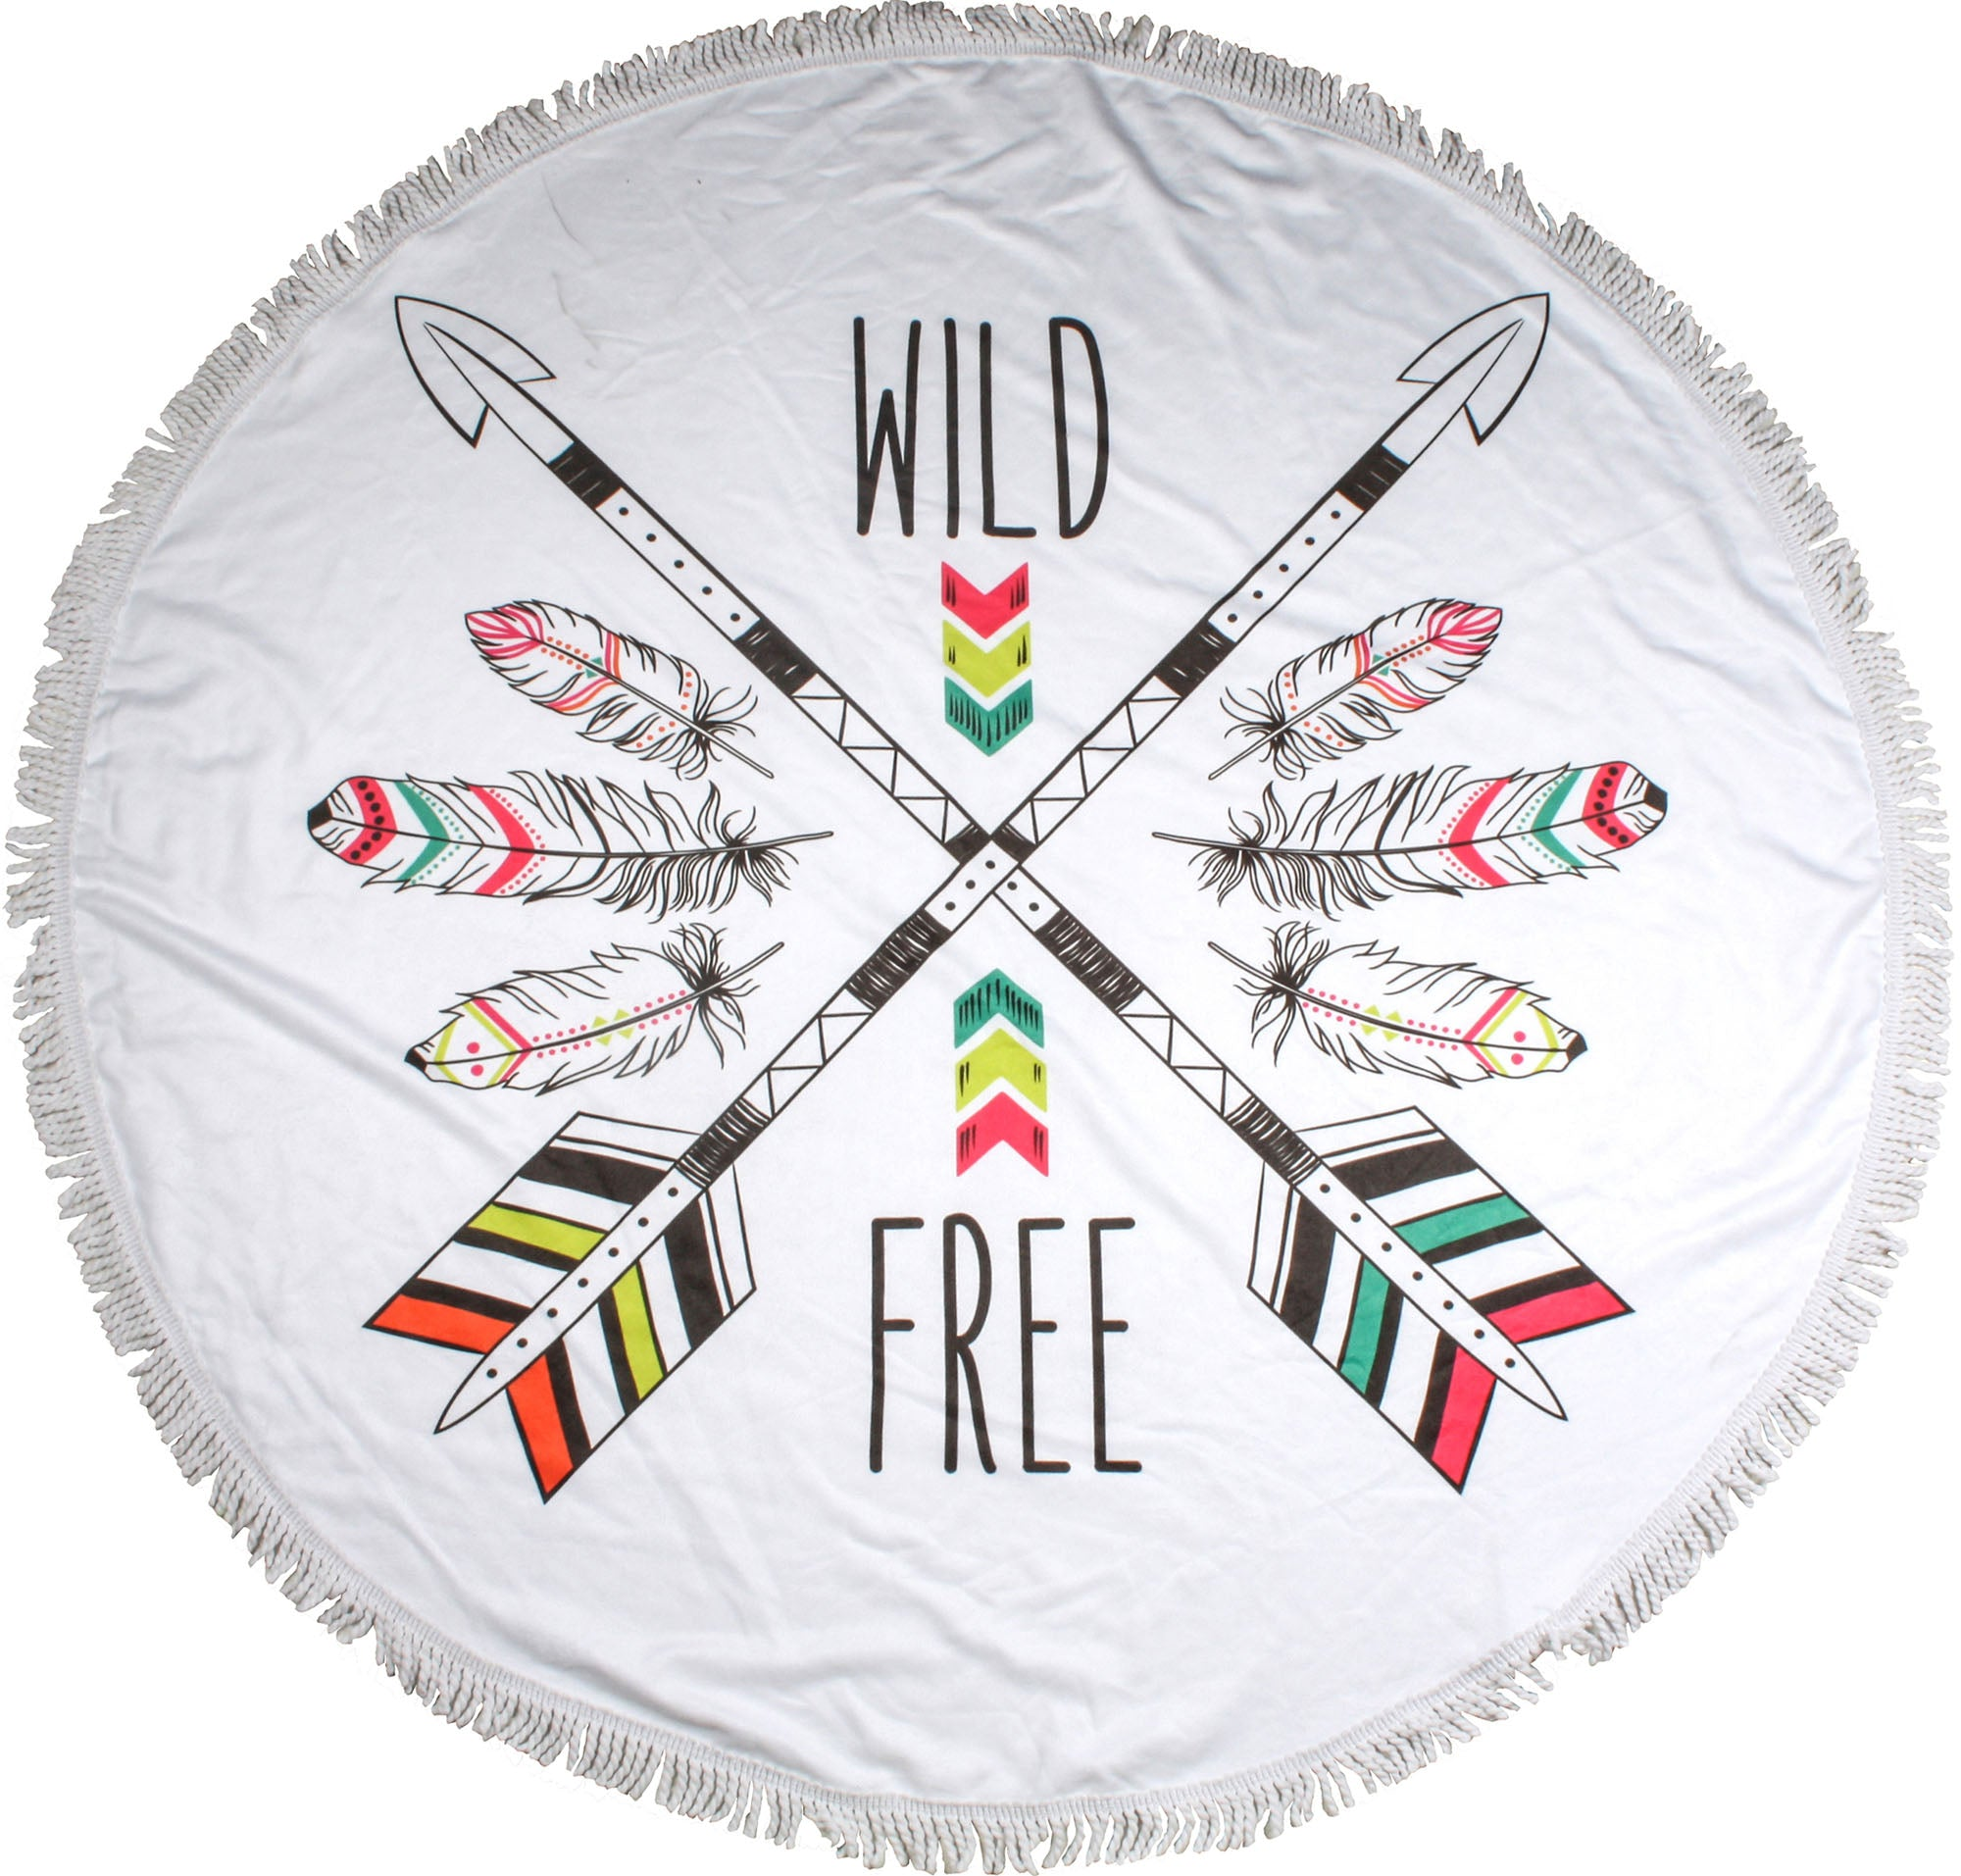 Wild and Free Round Towels - Chachi's Bay - kids rashies - kids swimwear - kids swim shoes - round towels - beach towels